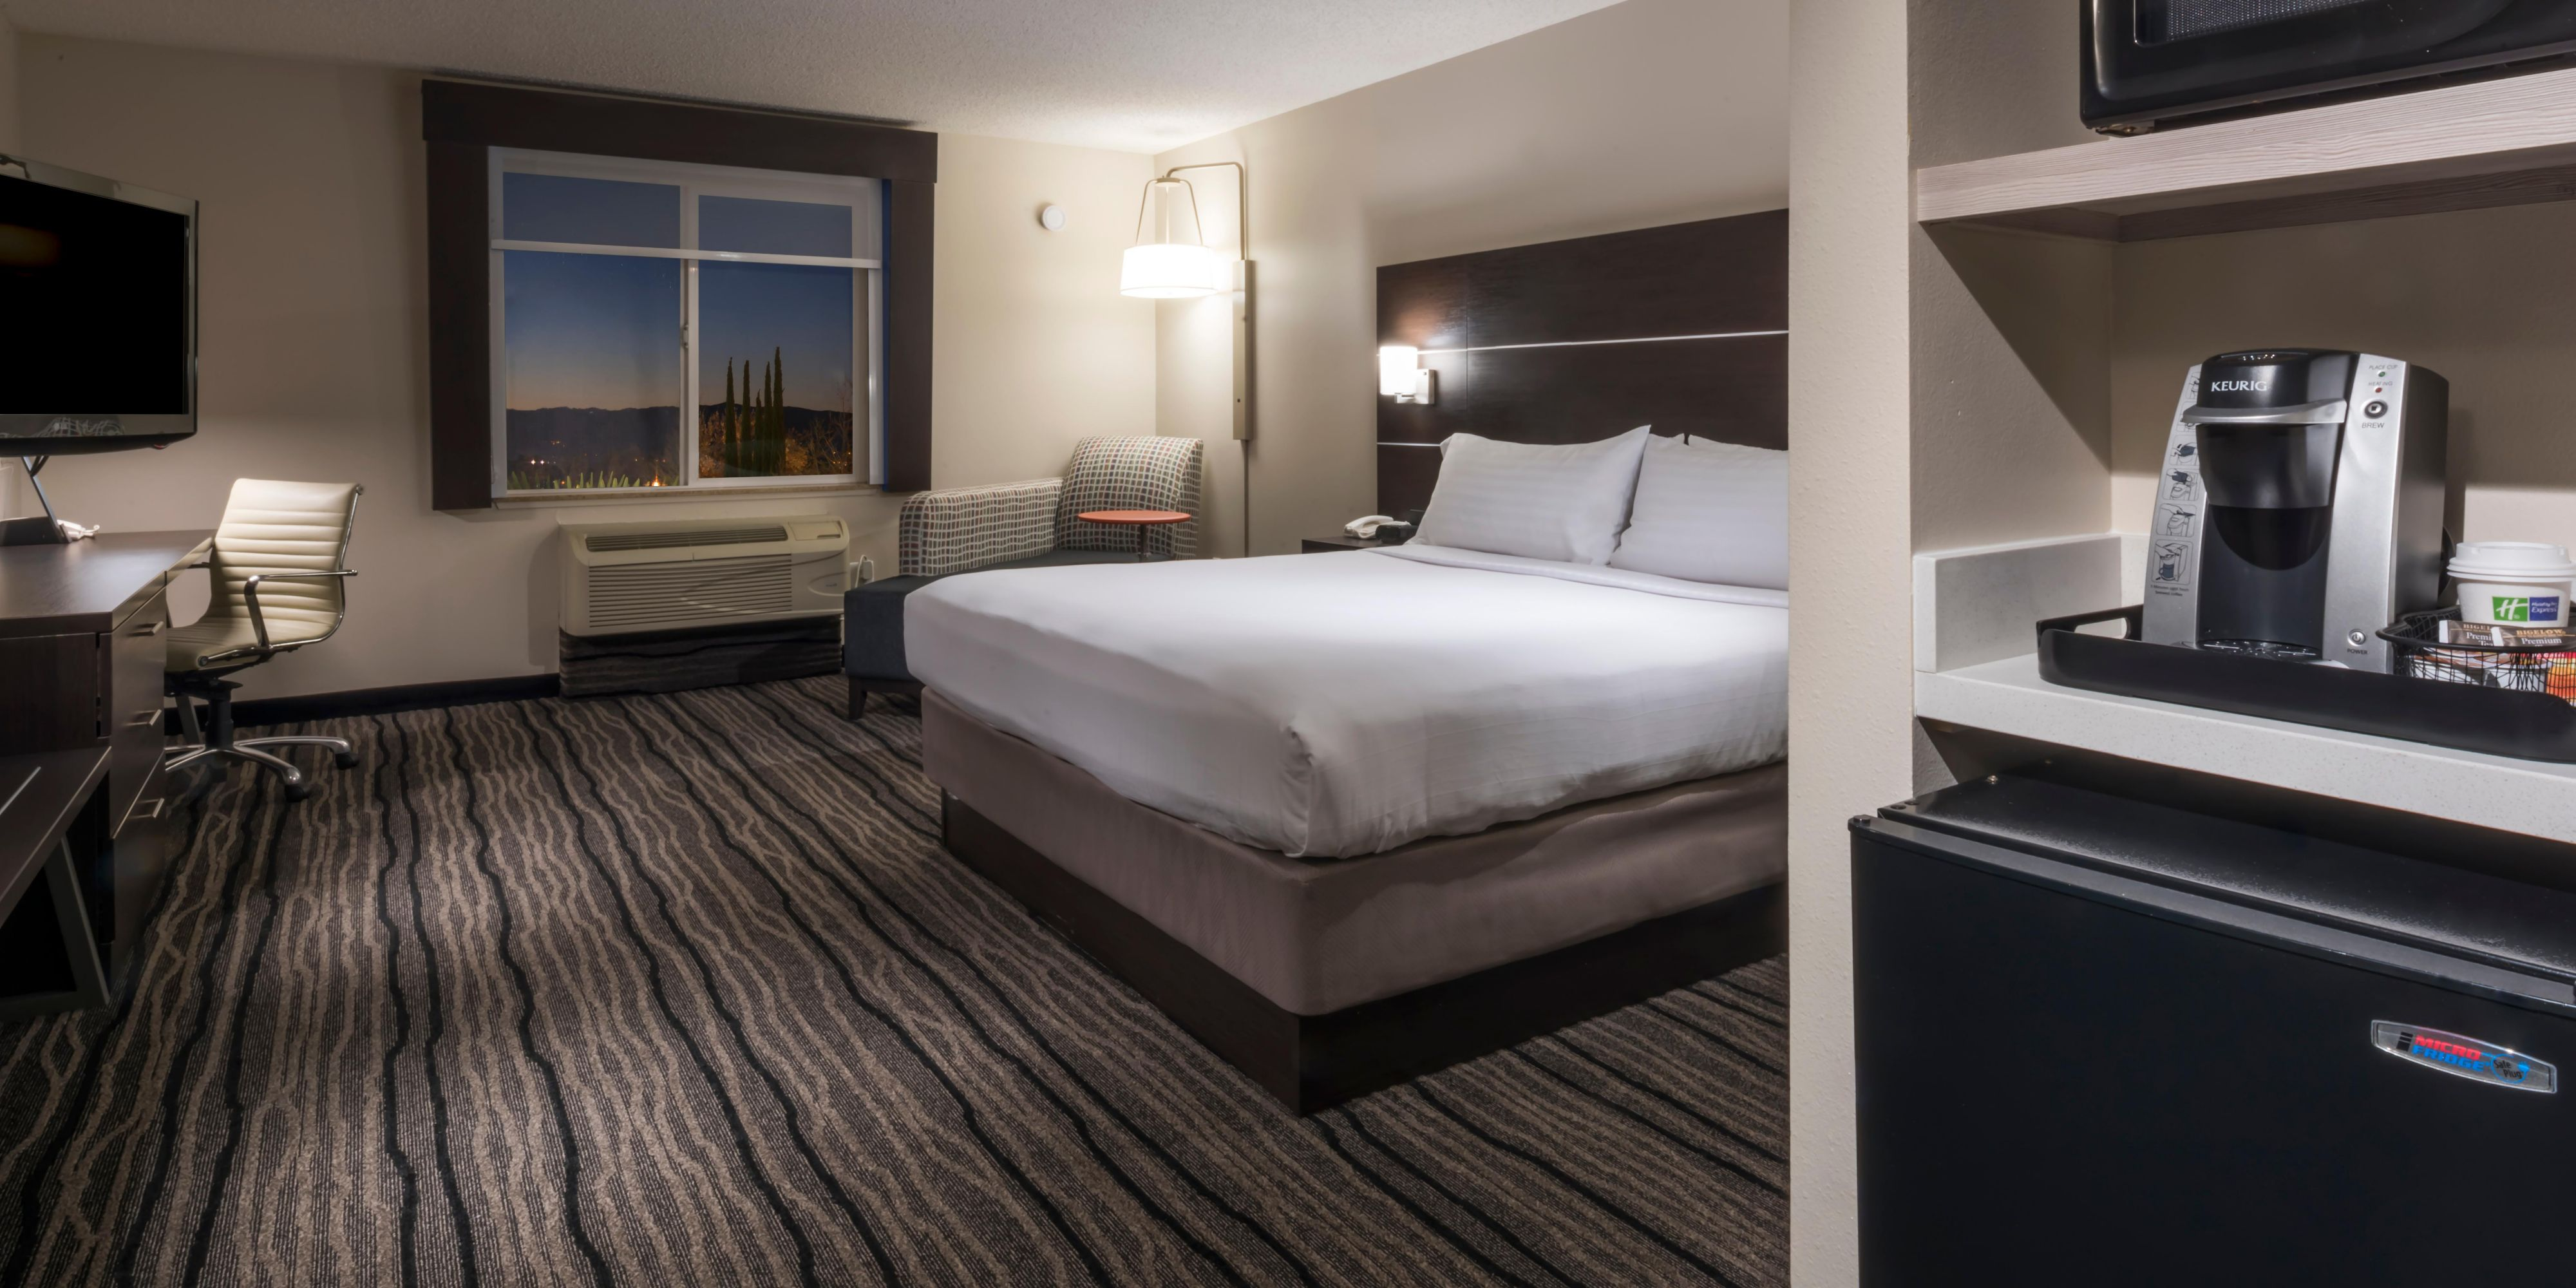 Holiday Inn Express And Suites Livermore 4937753247 2x1